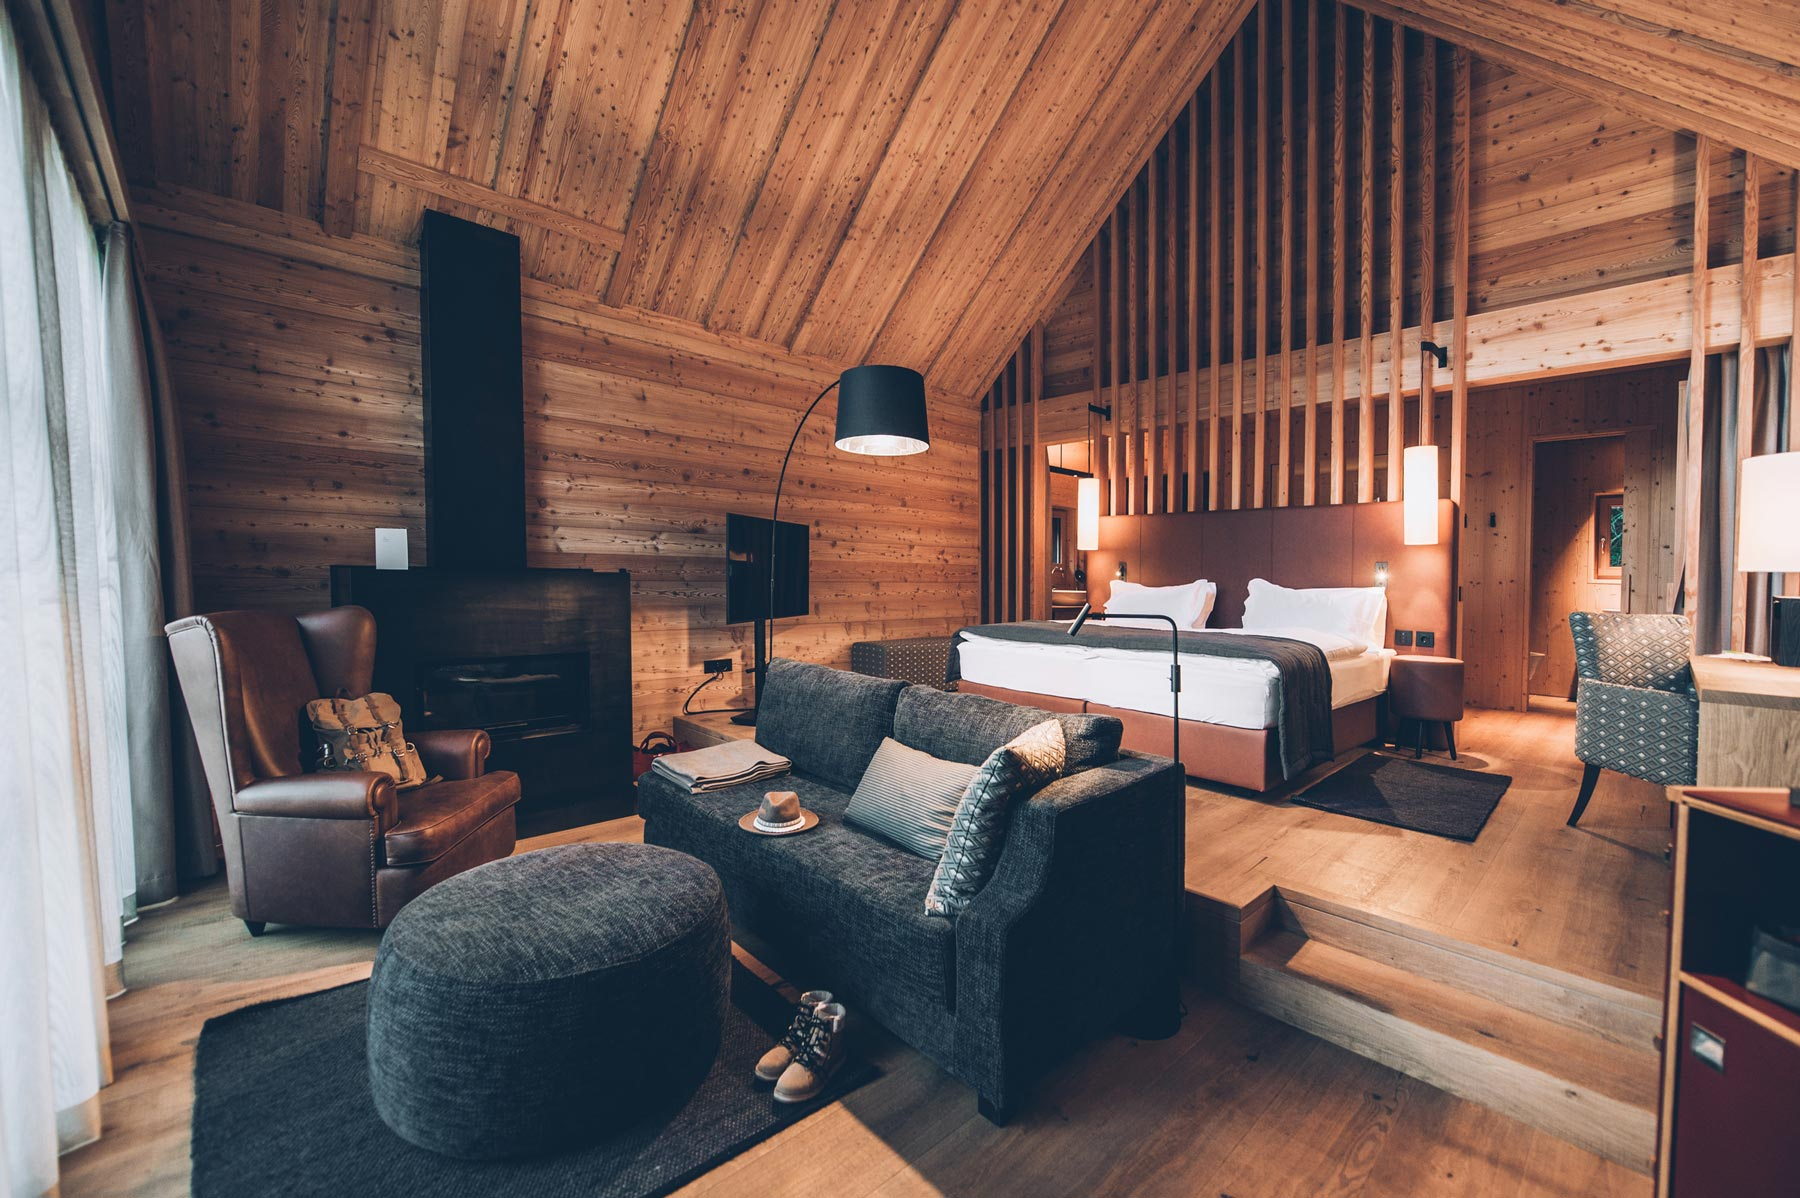 Adler Lodge Ritten, Dolomites Boutique Hotel